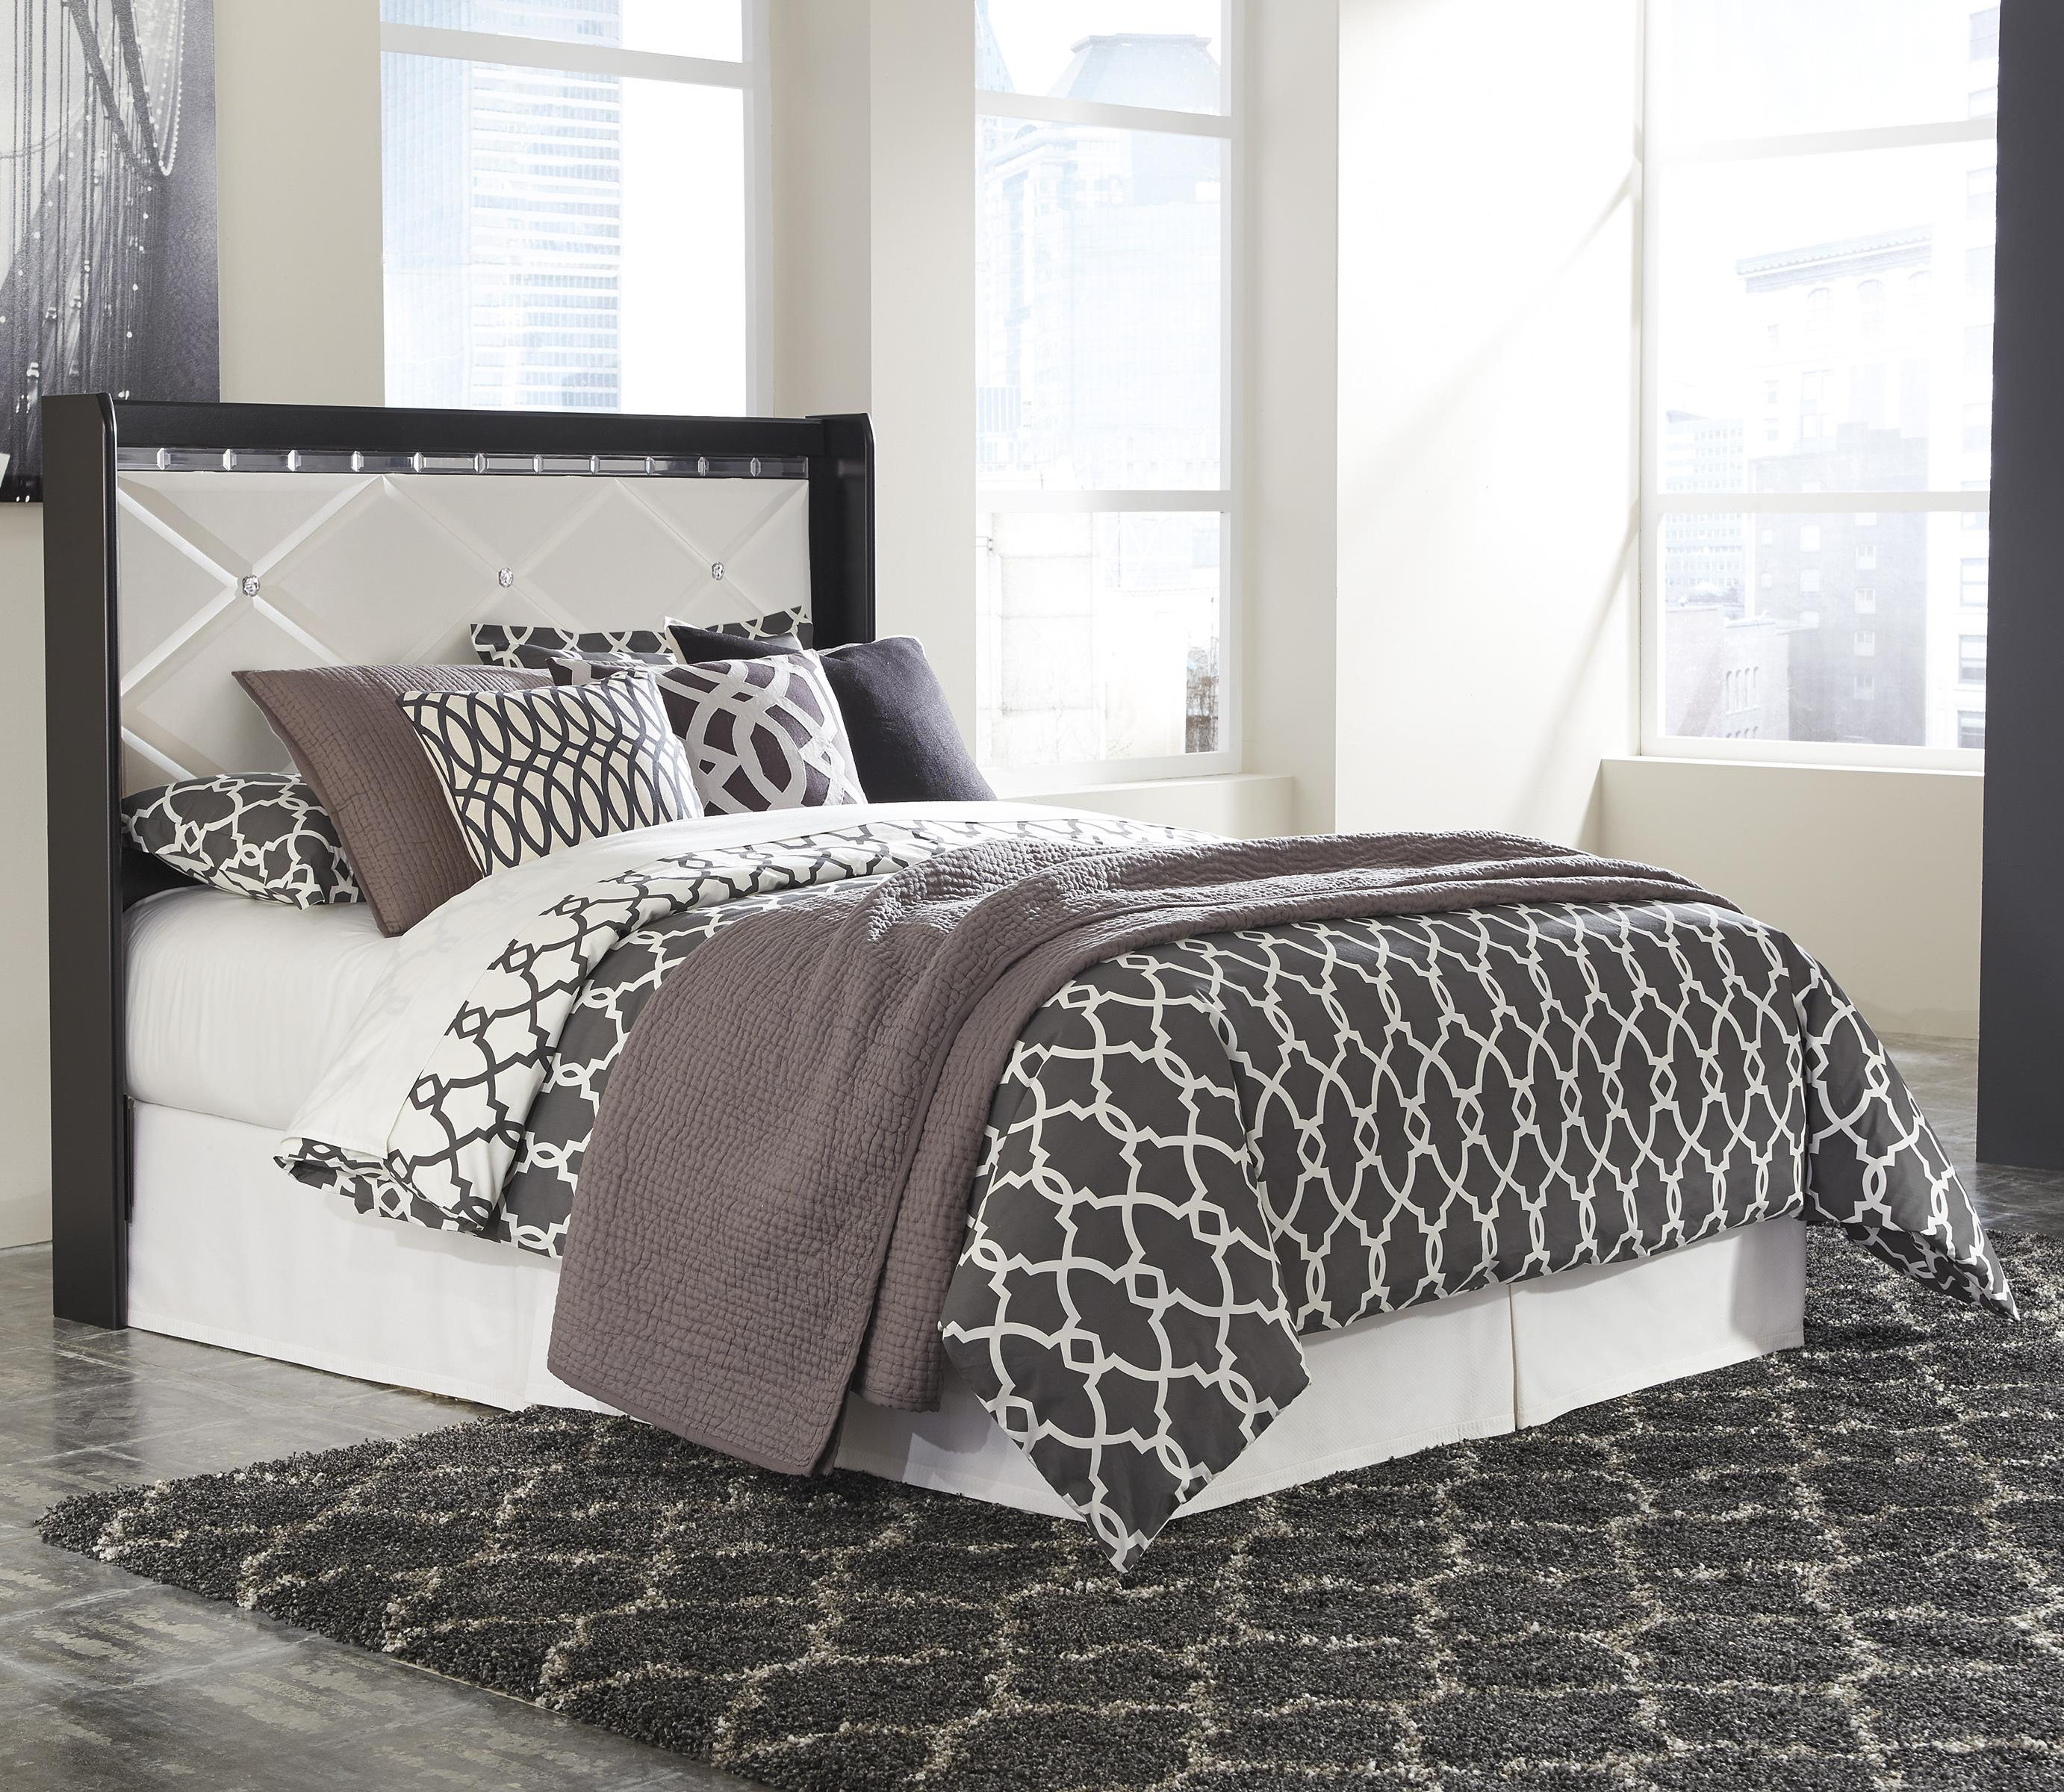 Signature Design by Ashley Fancee Queen Panel Headboard - Item Number: B348-57